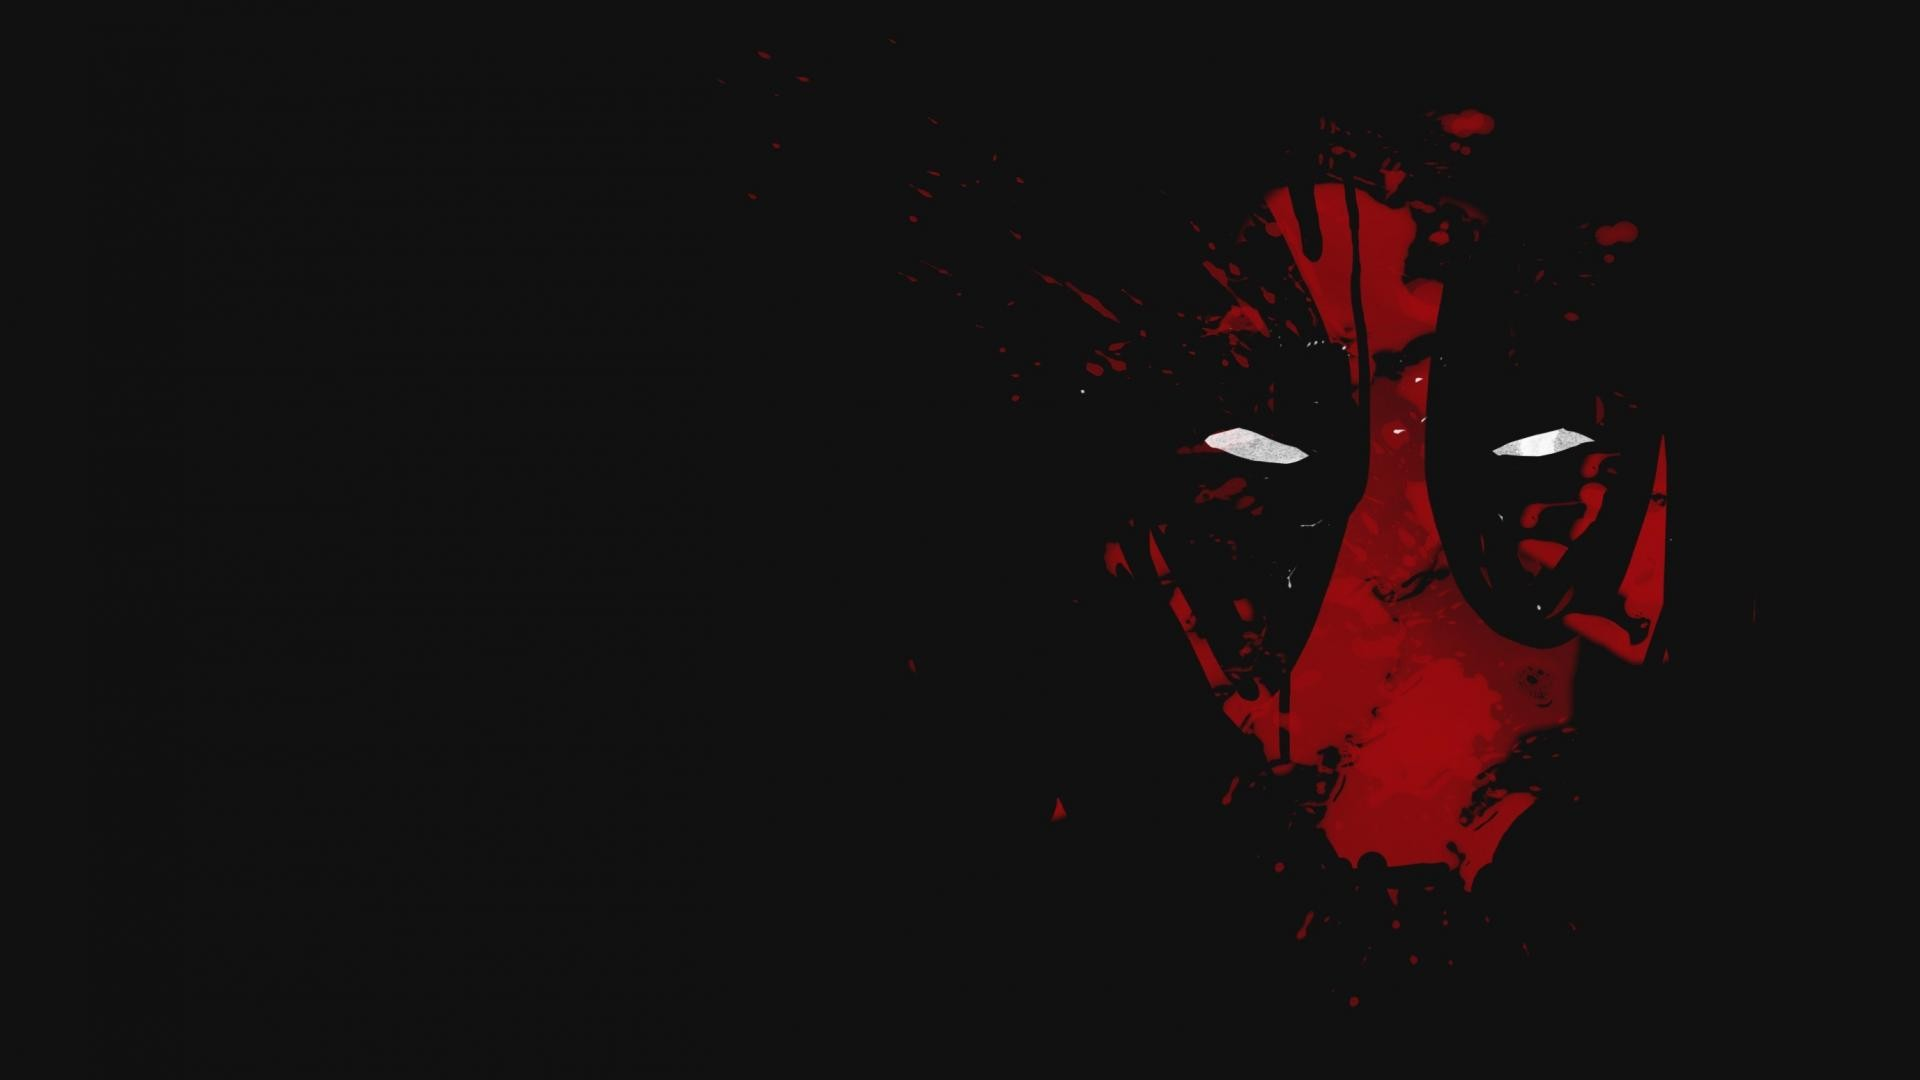 Deadpool HD Wallpaper 1 Download Free Cool Backgrounds For